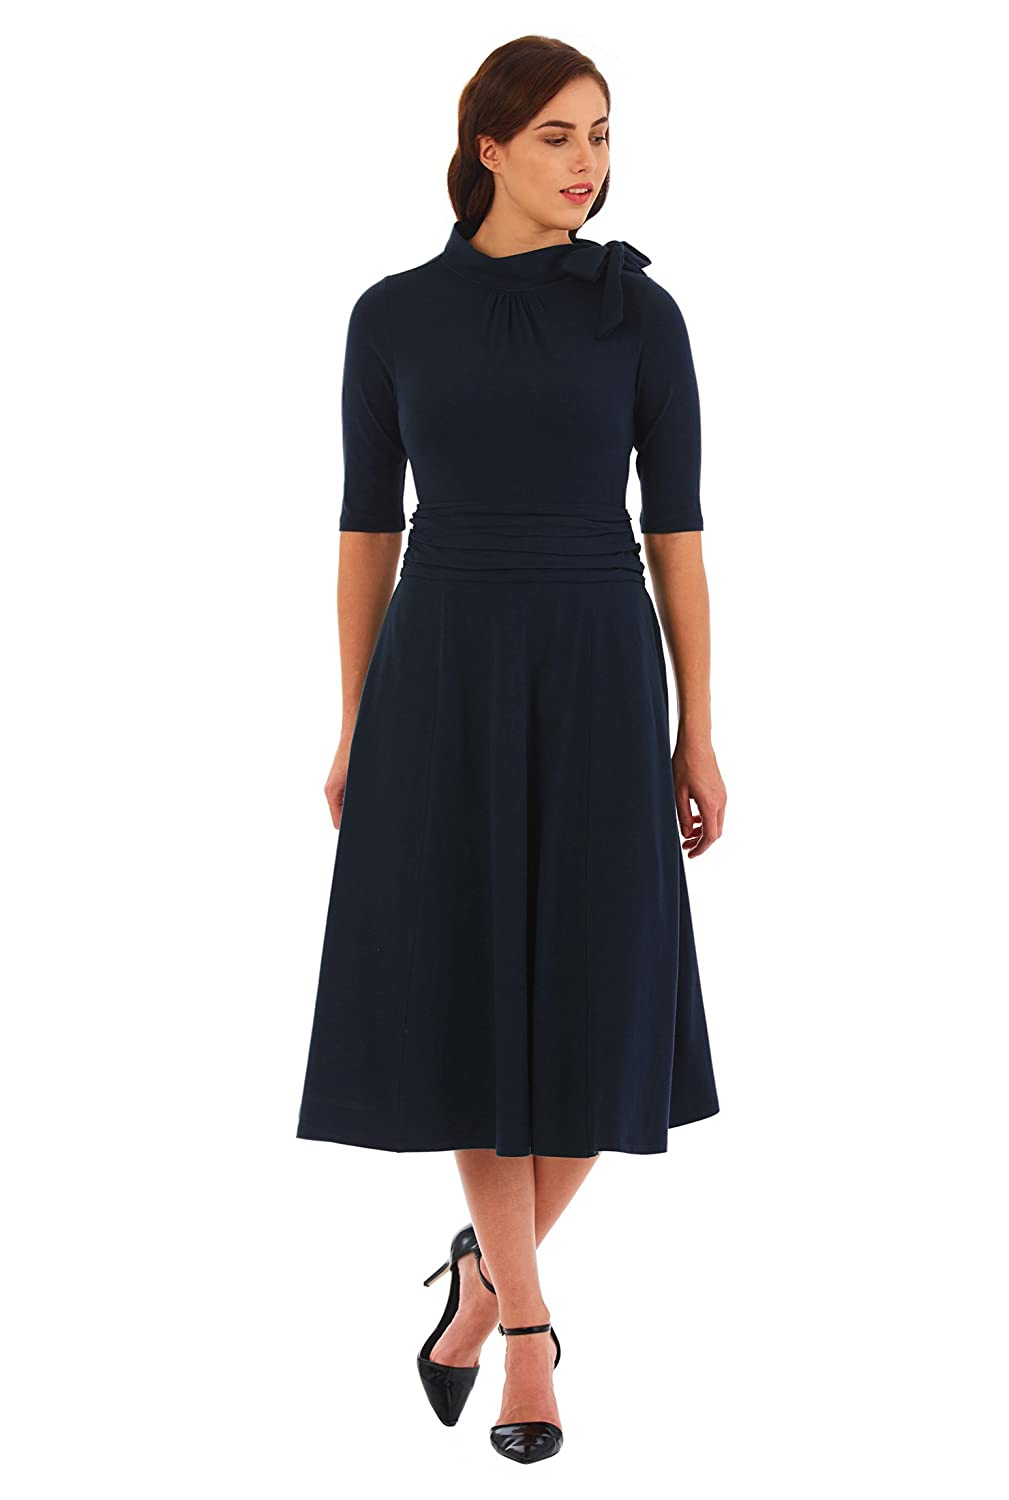 1940s Plus Size Fashion: Style Advice from 1940s to Today eShakti Womens Bow Tie Pleat Waist Cotton Knit Dress $54.95 AT vintagedancer.com